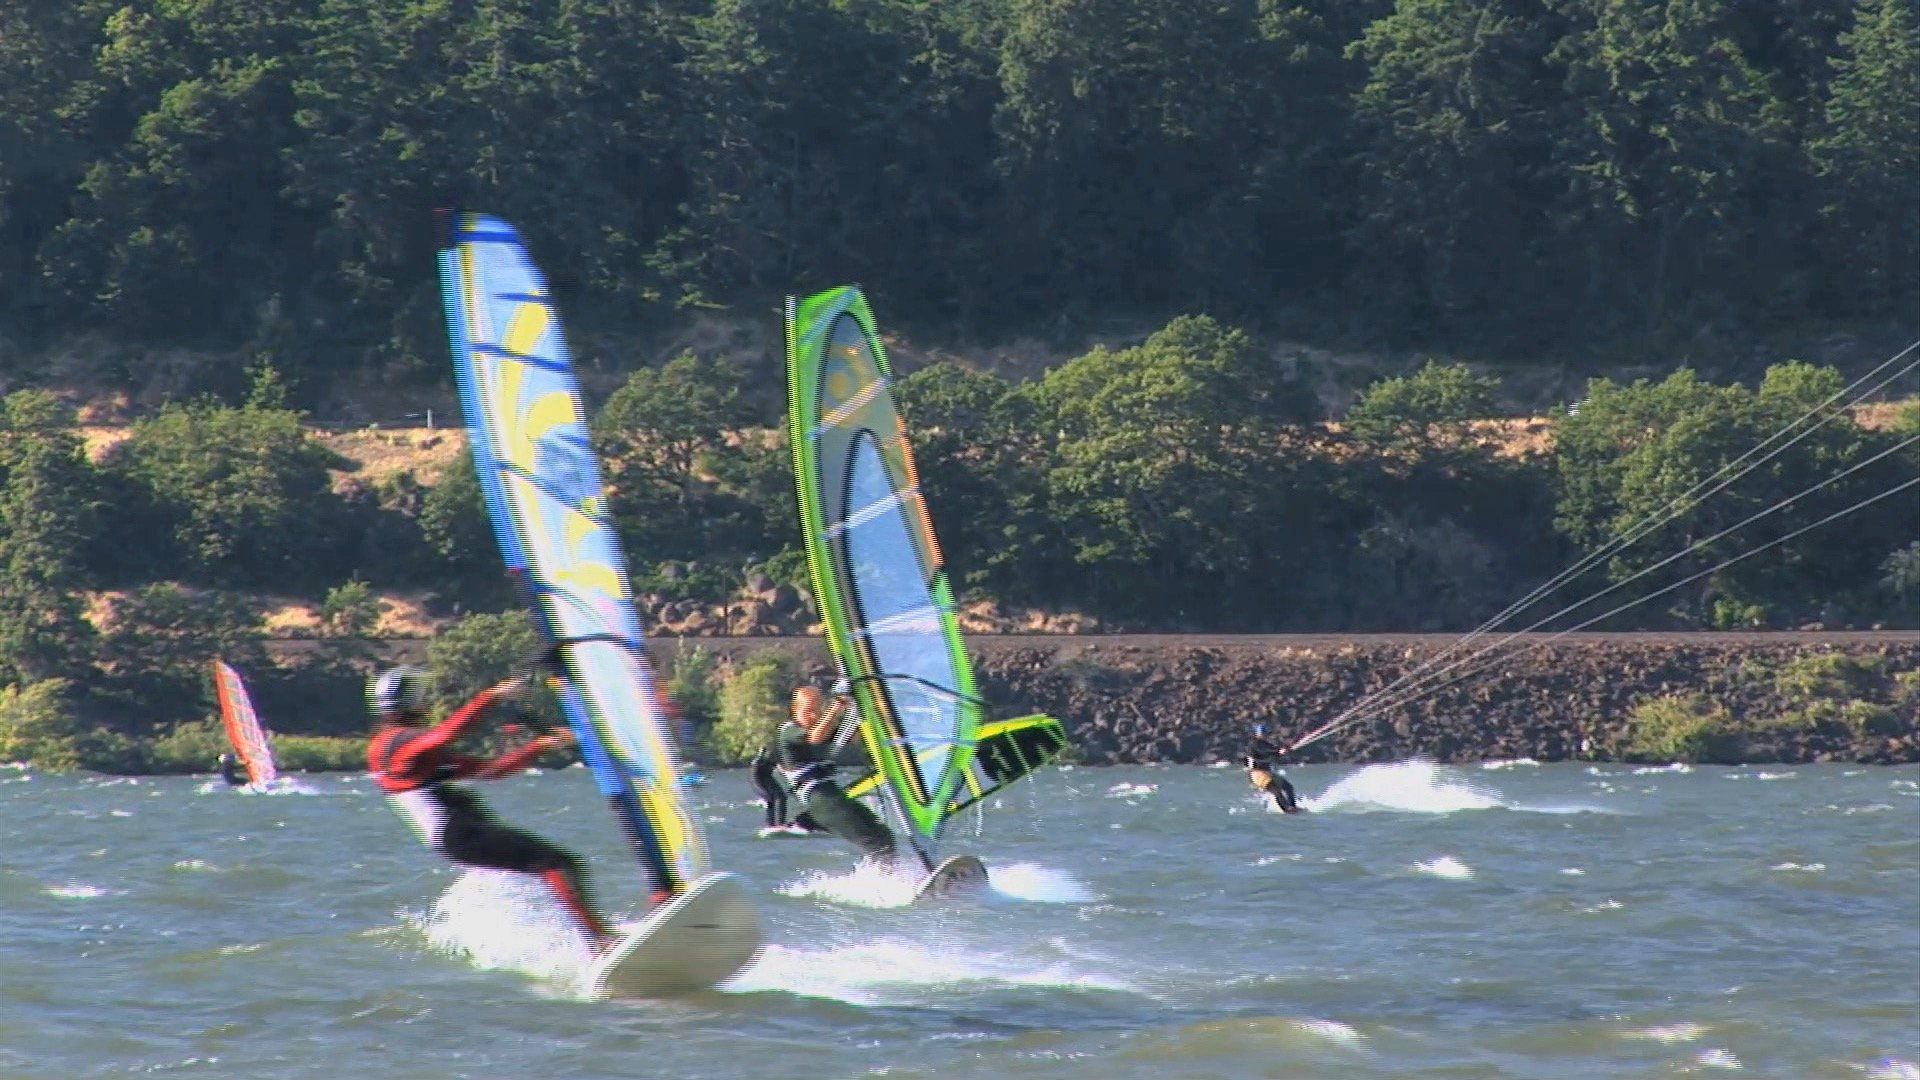 Windsurfers And Kiteboarders On The Columbia River